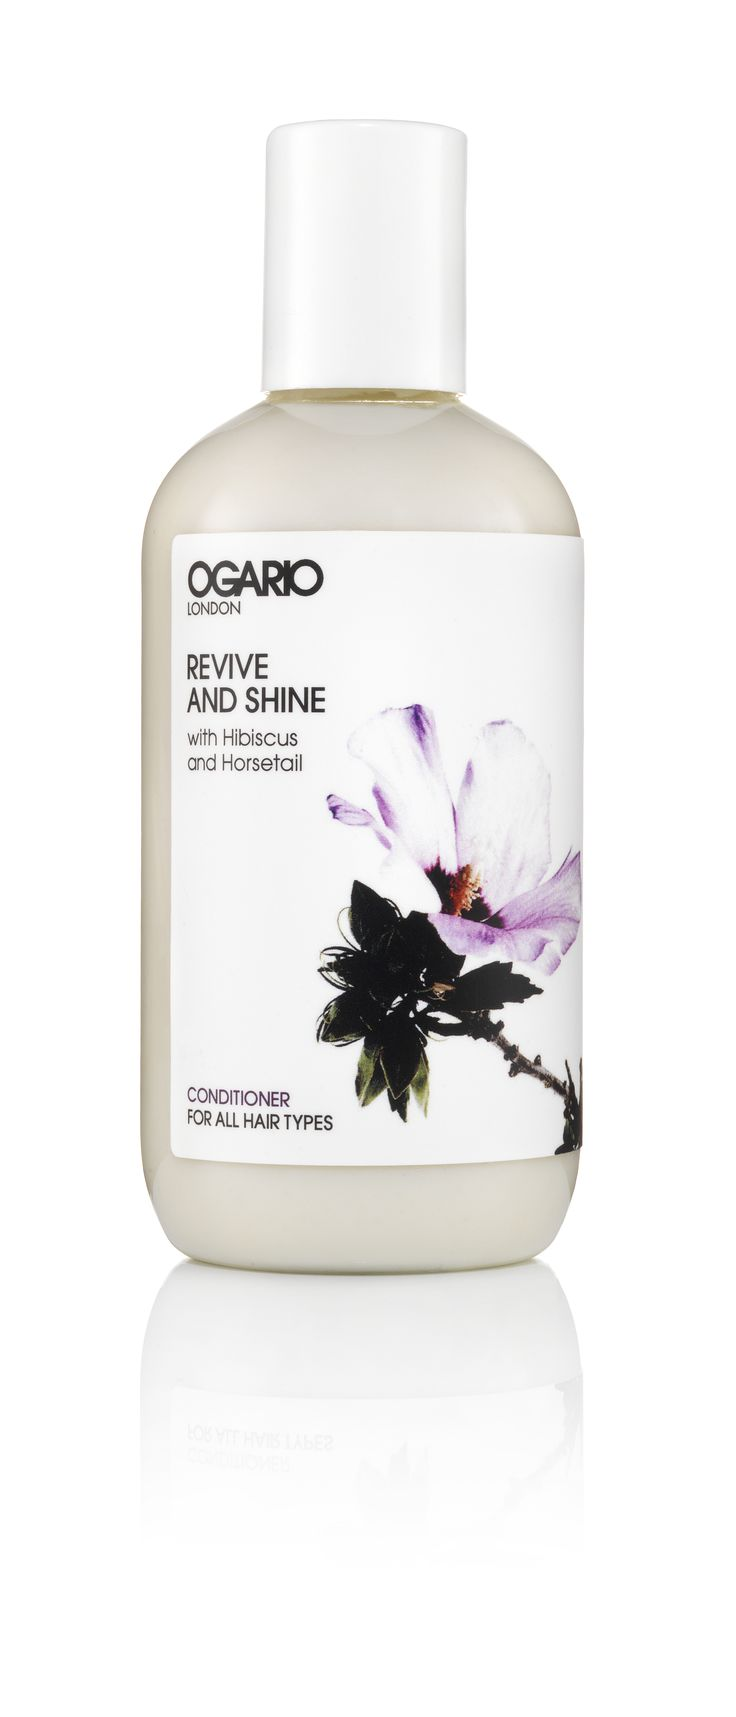 Revive and Shine Conditioner 250ml. Boost the shine with our award-winning nourishing conditioner, developed to leave hair smooth and tangle-free, without weighing it down. For all hair types.